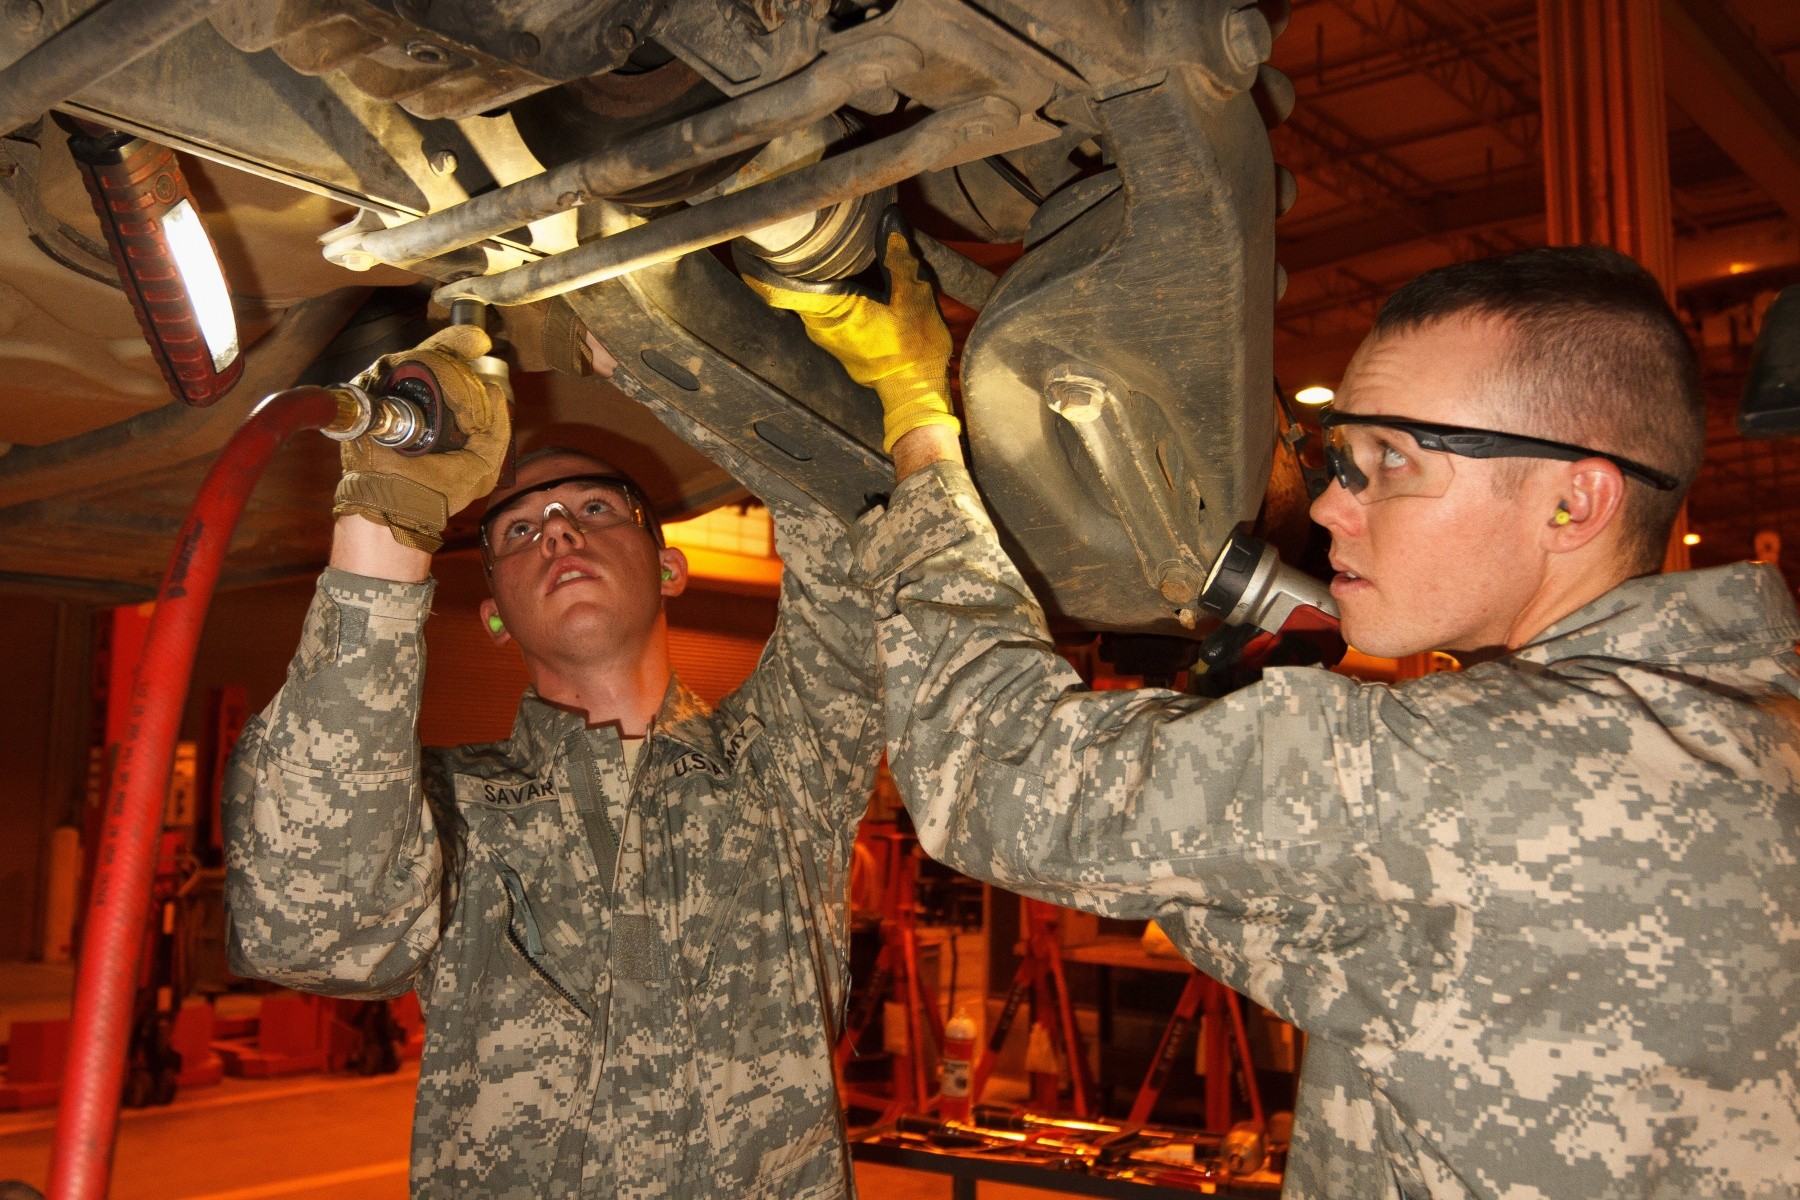 Arizona Guard Soldiers provides maintenance support to the US Army during annual training